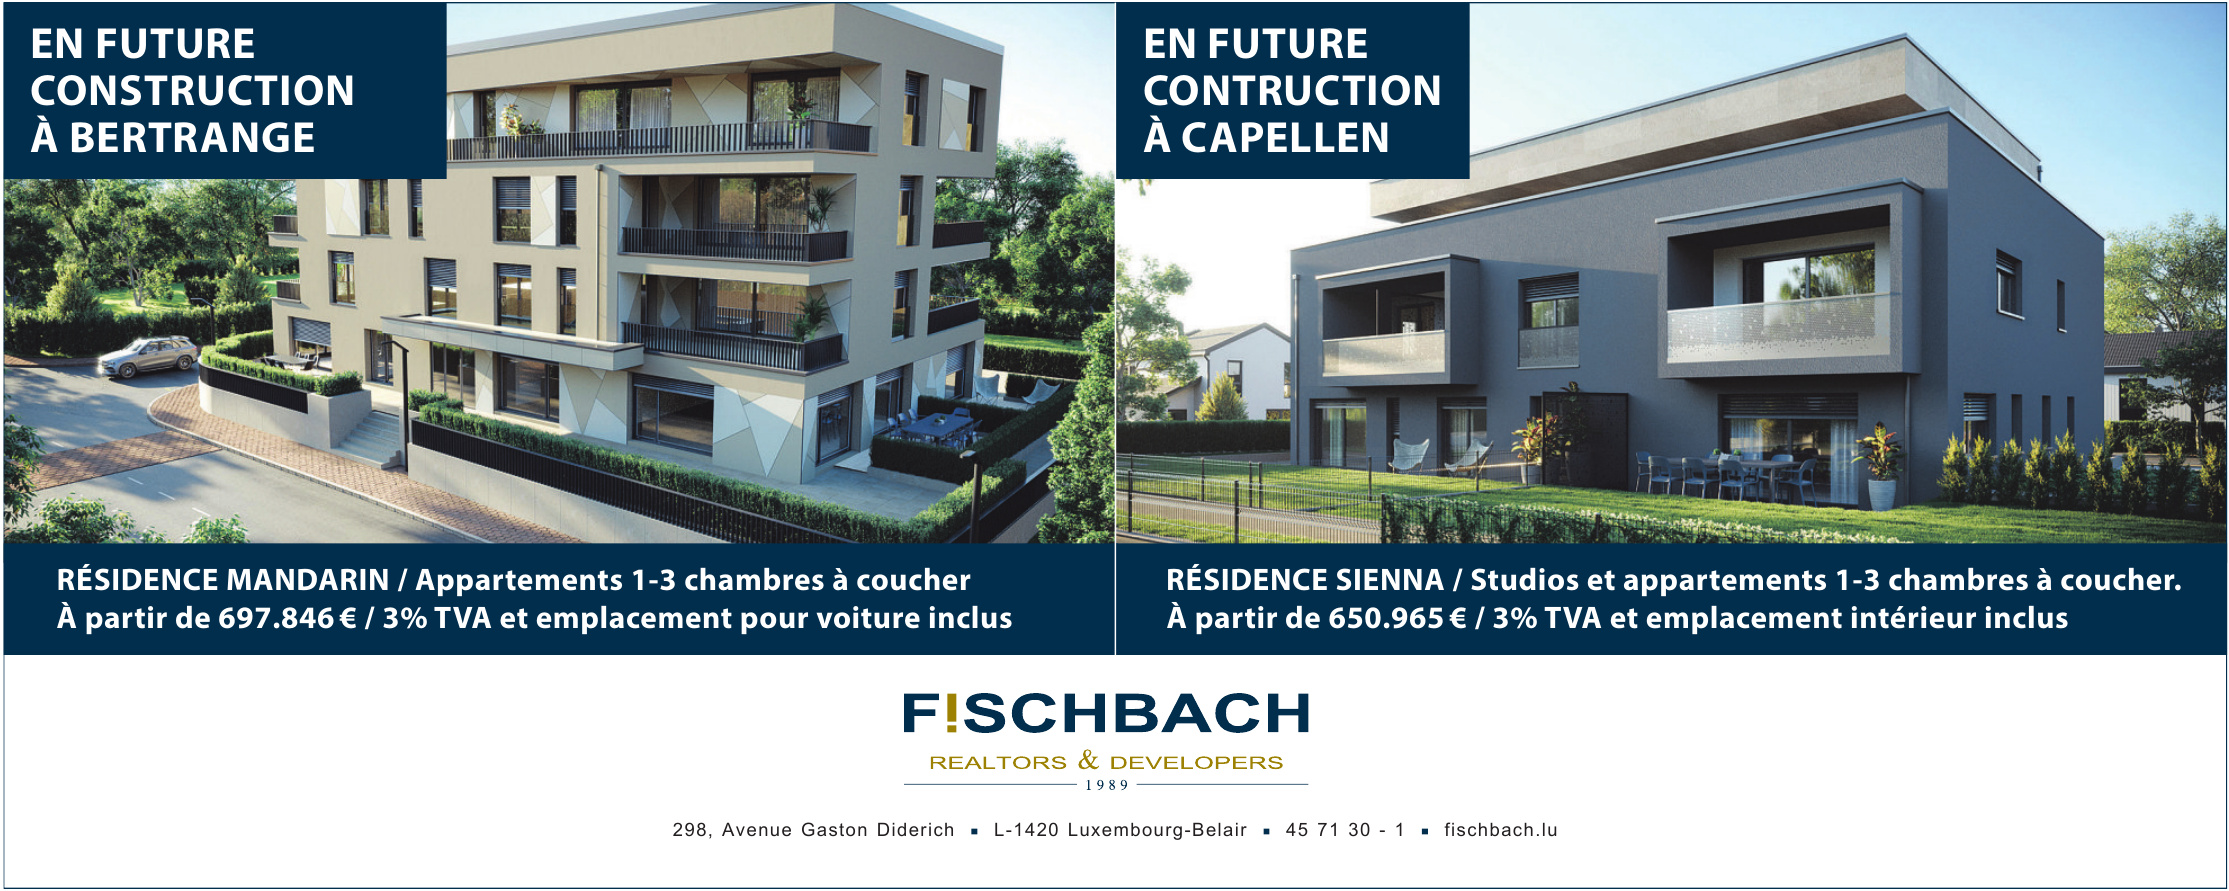 FISCHBACH Realtors & Developers